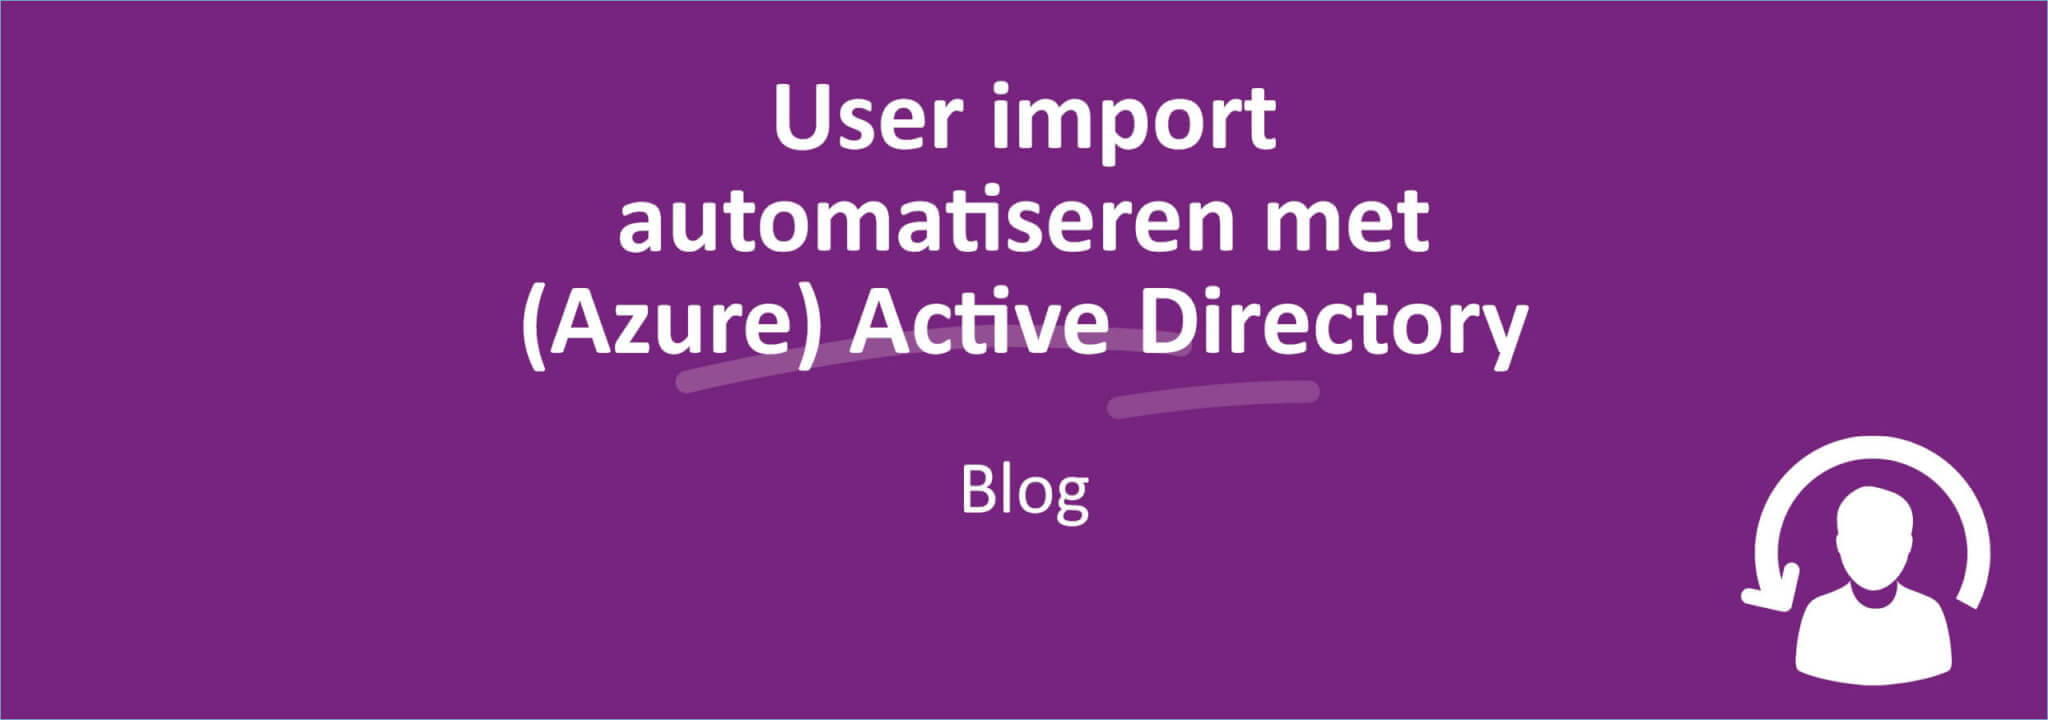 User Import Active Directory Image